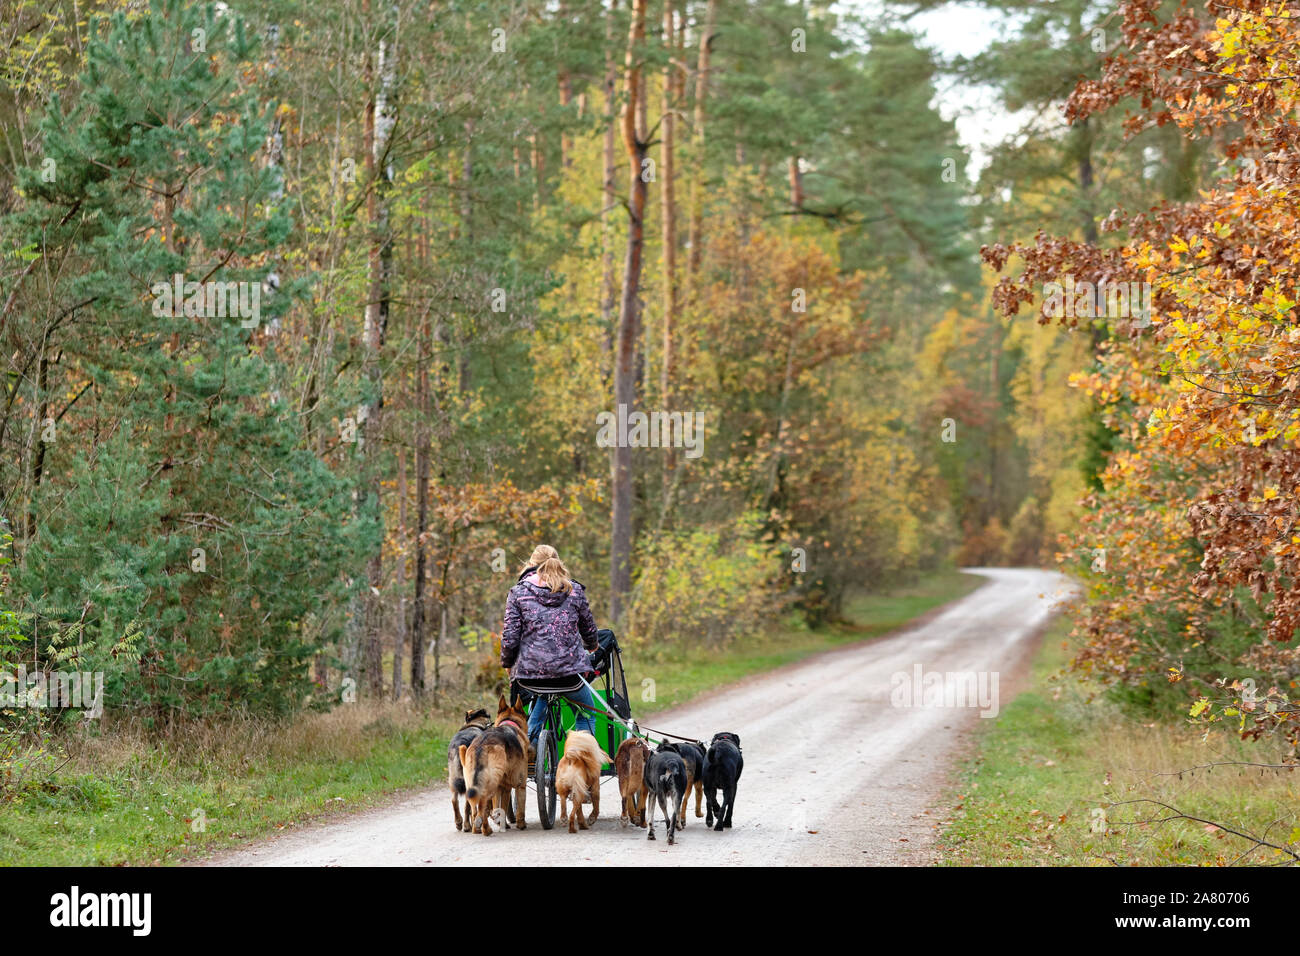 Nuremberg, Germany - November 02, 2019: Woman taking many dogs for a walk in the forest with a three wheeled bicycle on a gravel road Stock Photo